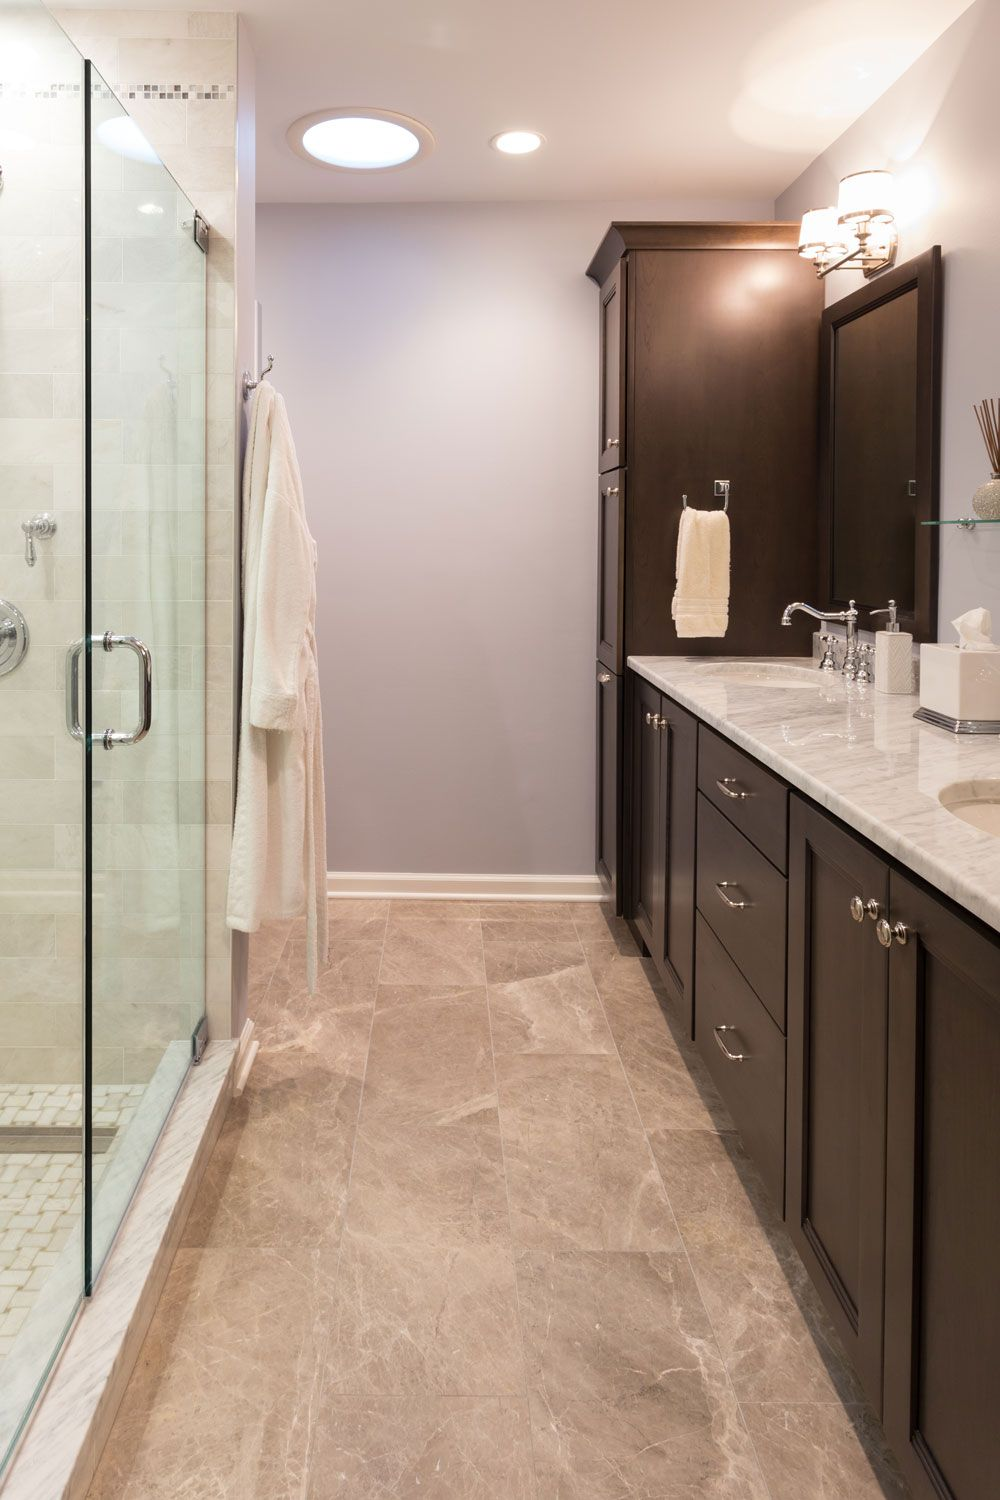 Bathroom remodel in chatham new jersey designed by kraftmaster